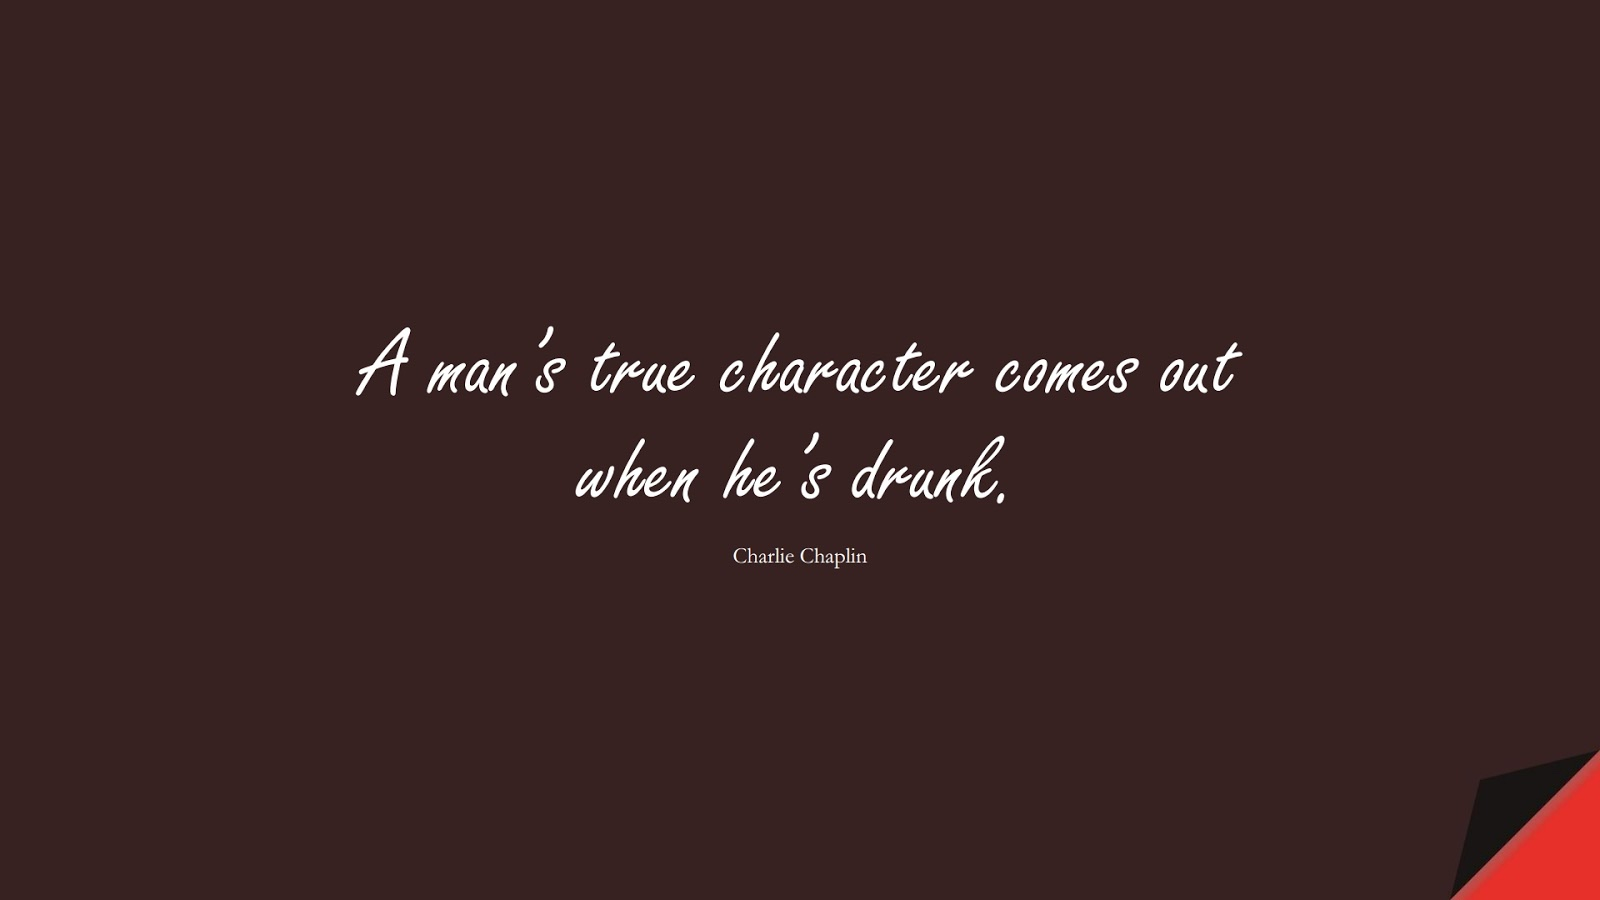 A man's true character comes out when he's drunk. (Charlie Chaplin);  #CharacterQuotes